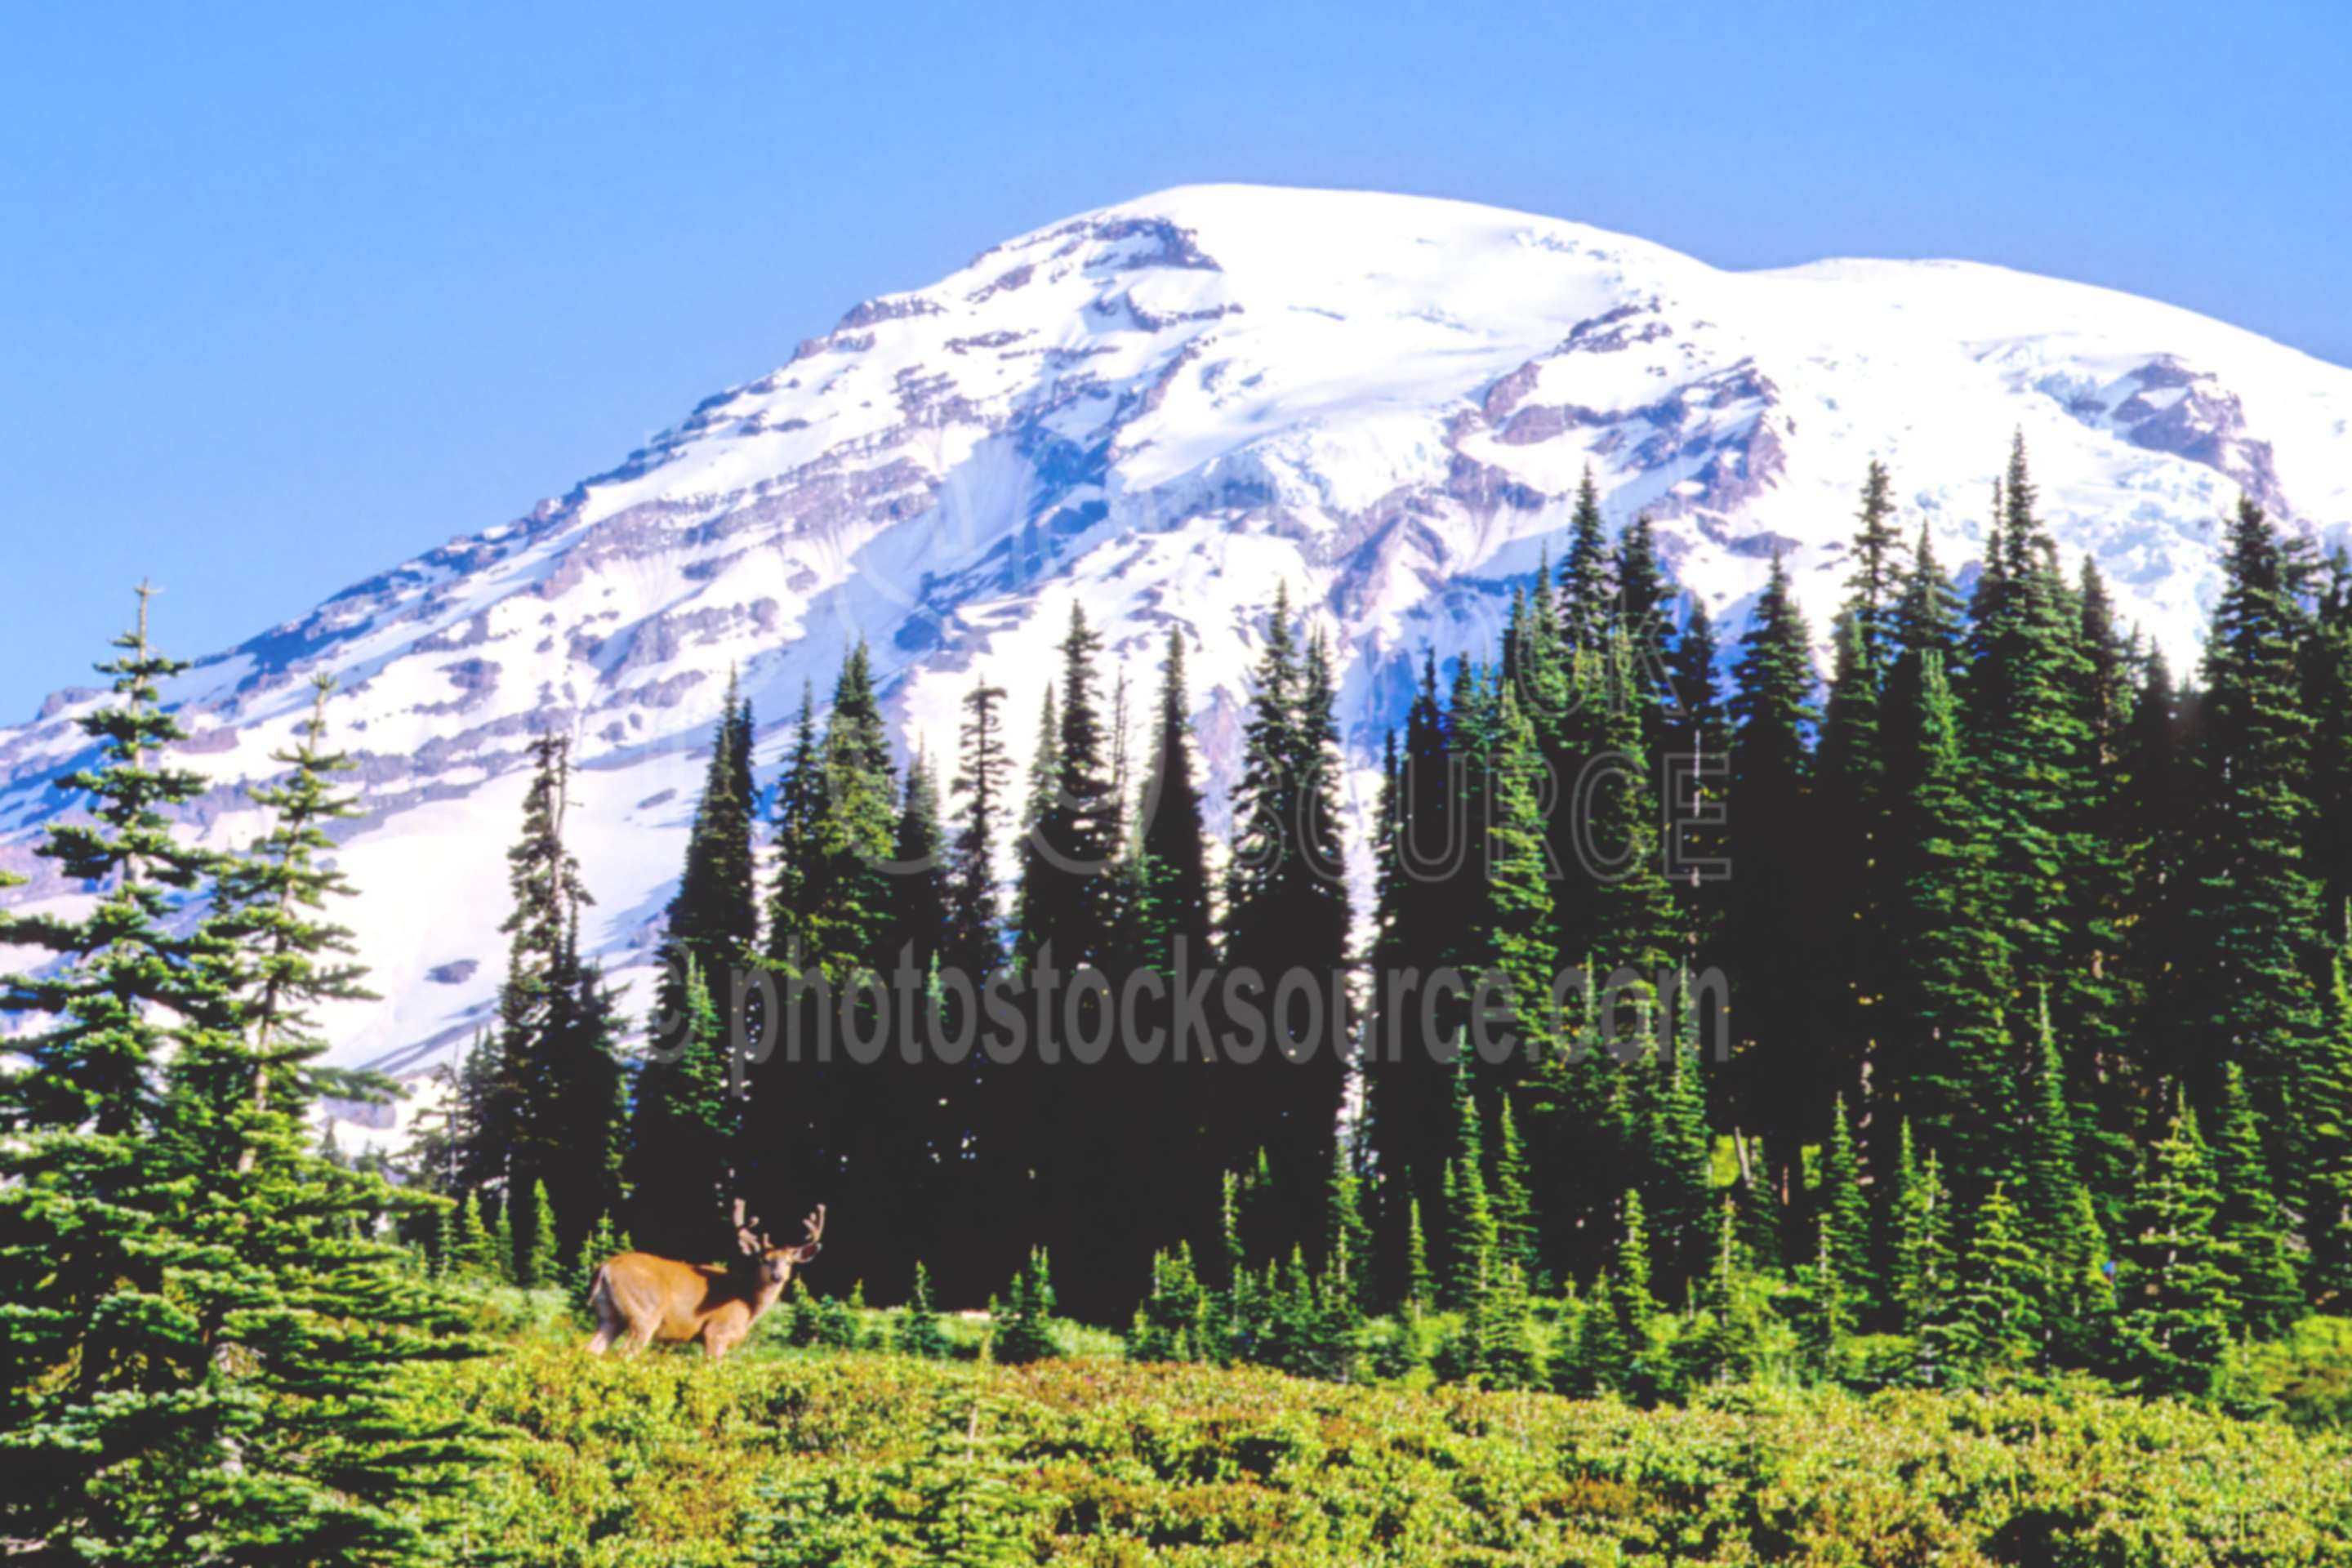 Deer and Mt. Rainier,animal,buck,deer,mt. rainier,paradise,usas,national park,nature,national parks,mountains